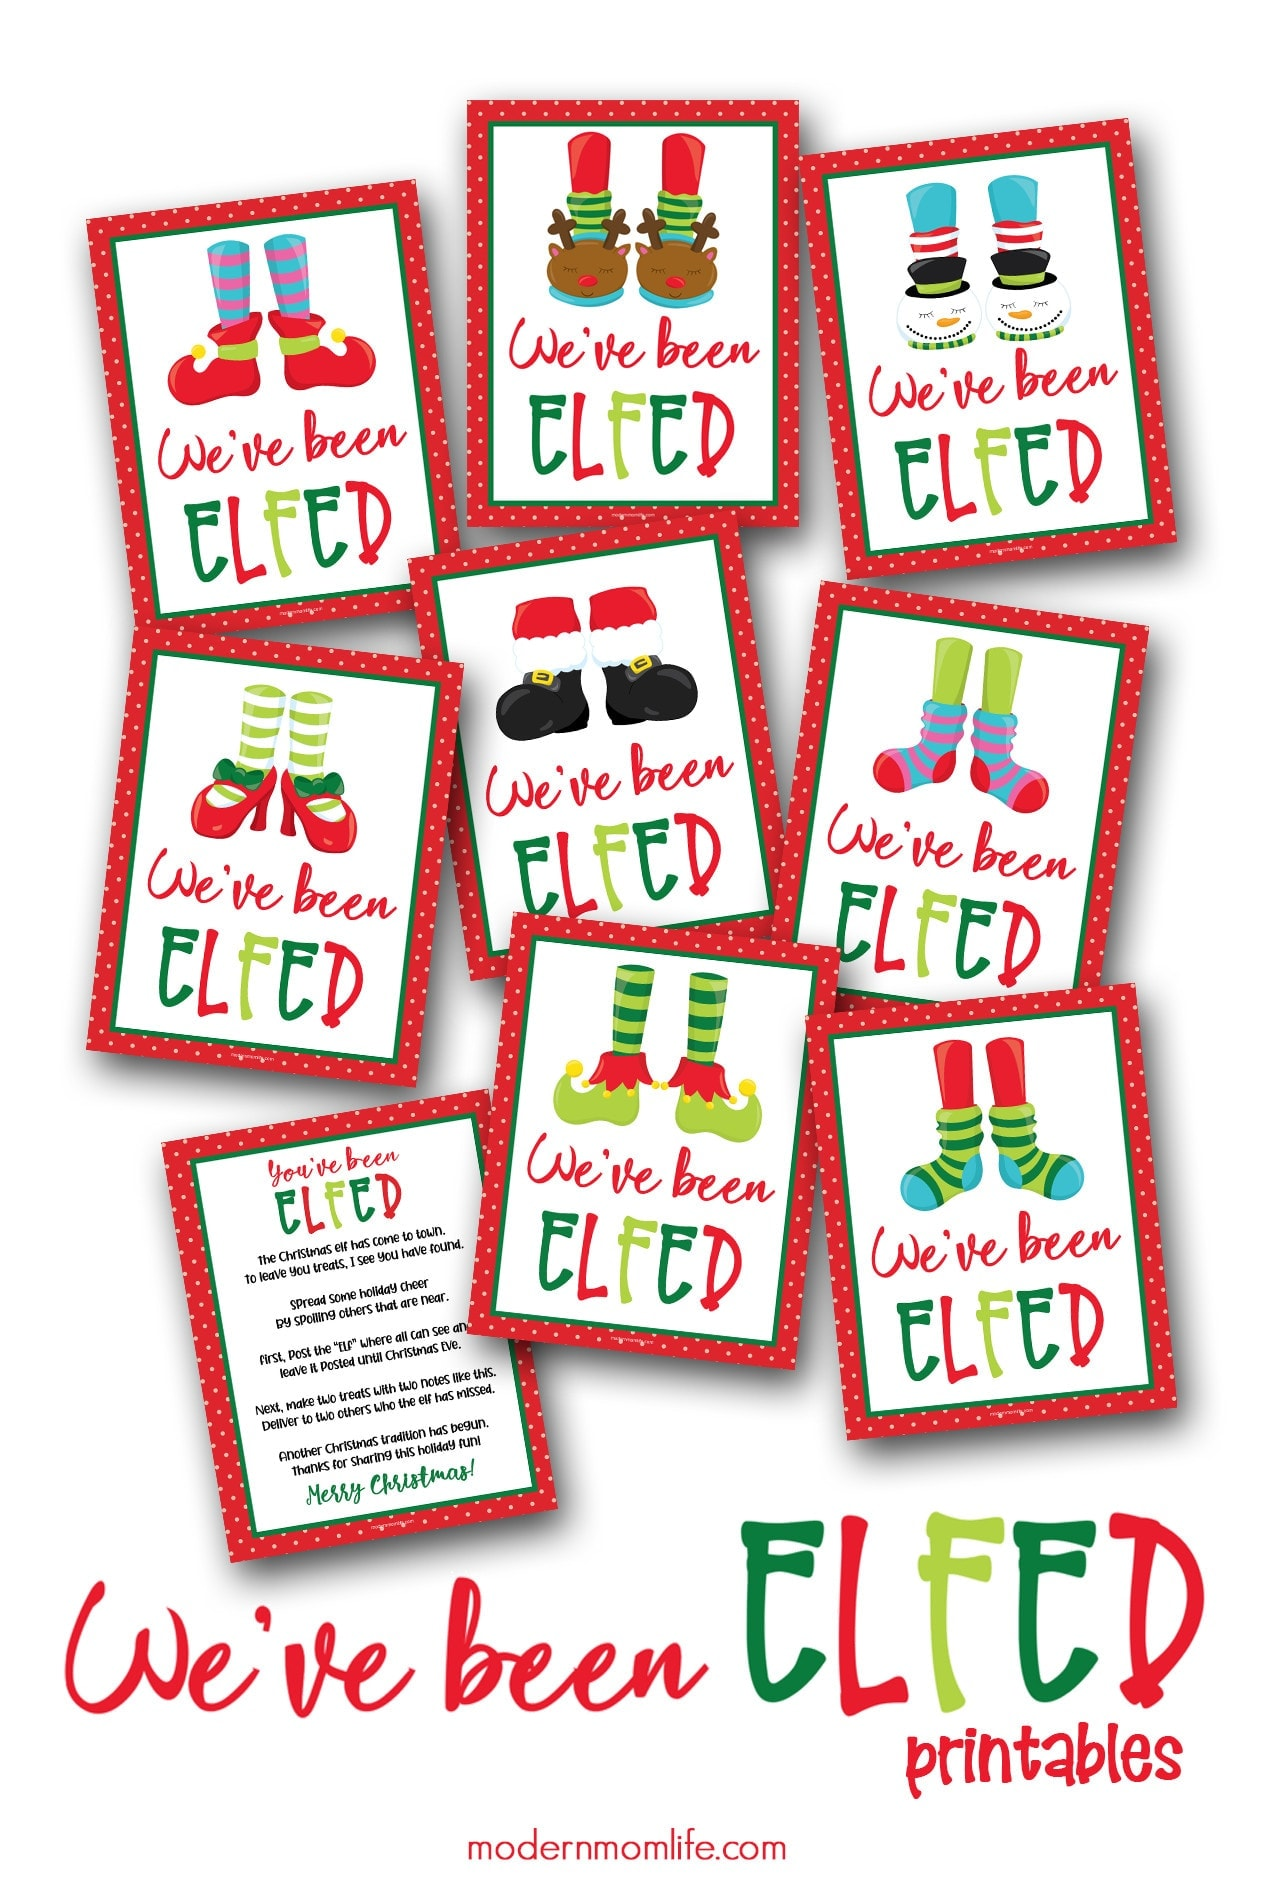 youve been elfed